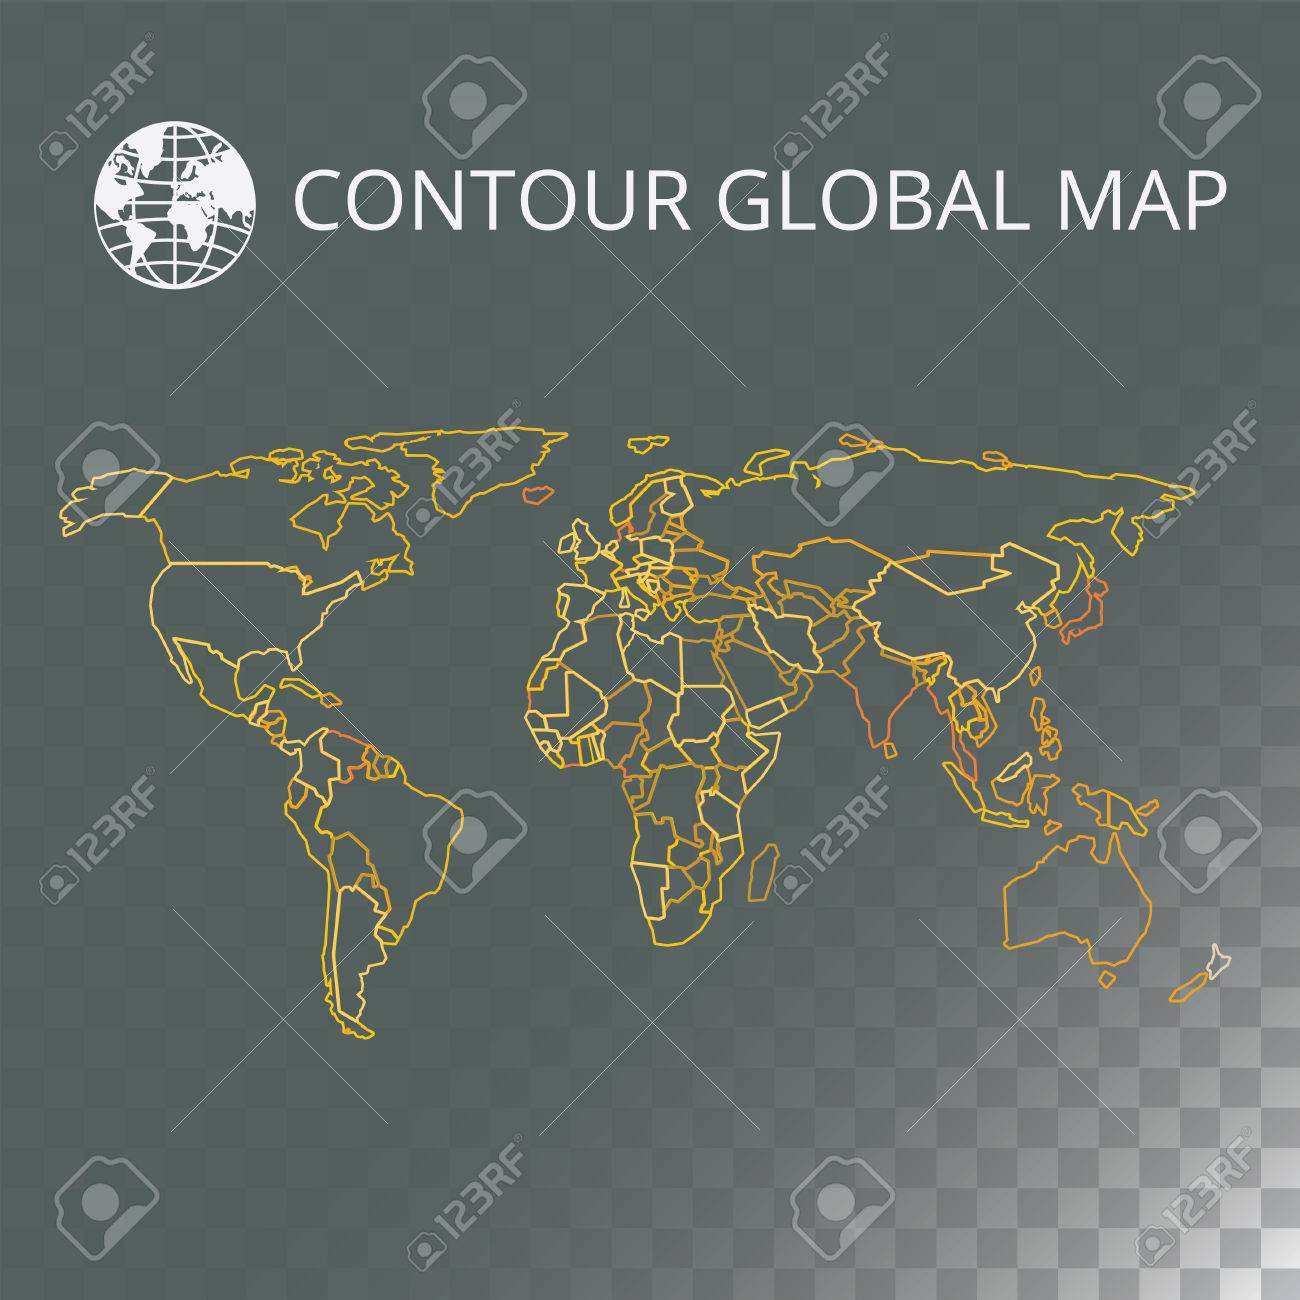 World map vector illustration high quality image in the style vector world map vector illustration high quality image in the style of broken lines detail and continents of the world colour identification gumiabroncs Gallery